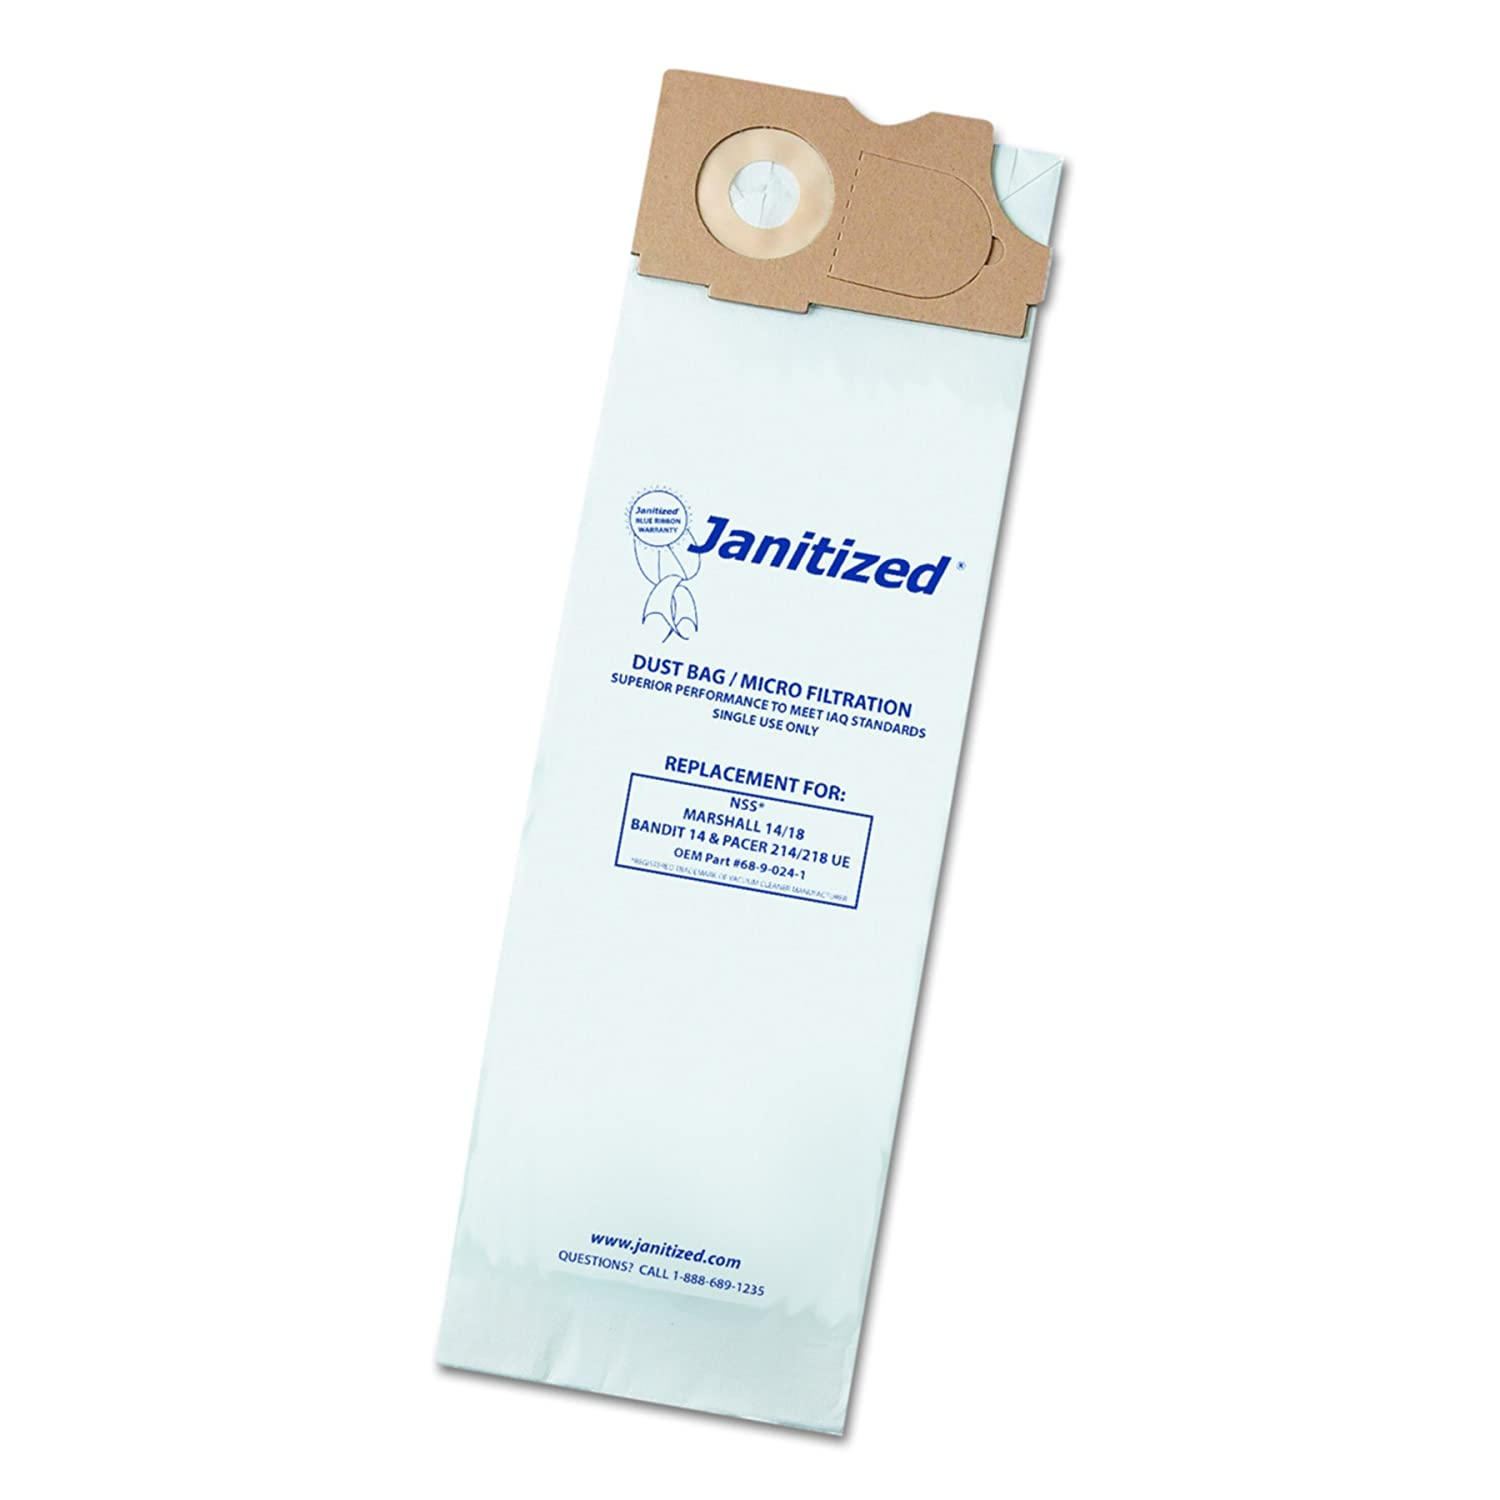 Janitized JAN-NSSM14-2 NSS Marshall 14/18, 2 Ply Vacuum Bag, Bandit 14 and Pacer 214/218 UE (10 per Pack, Case of 10 Packs)